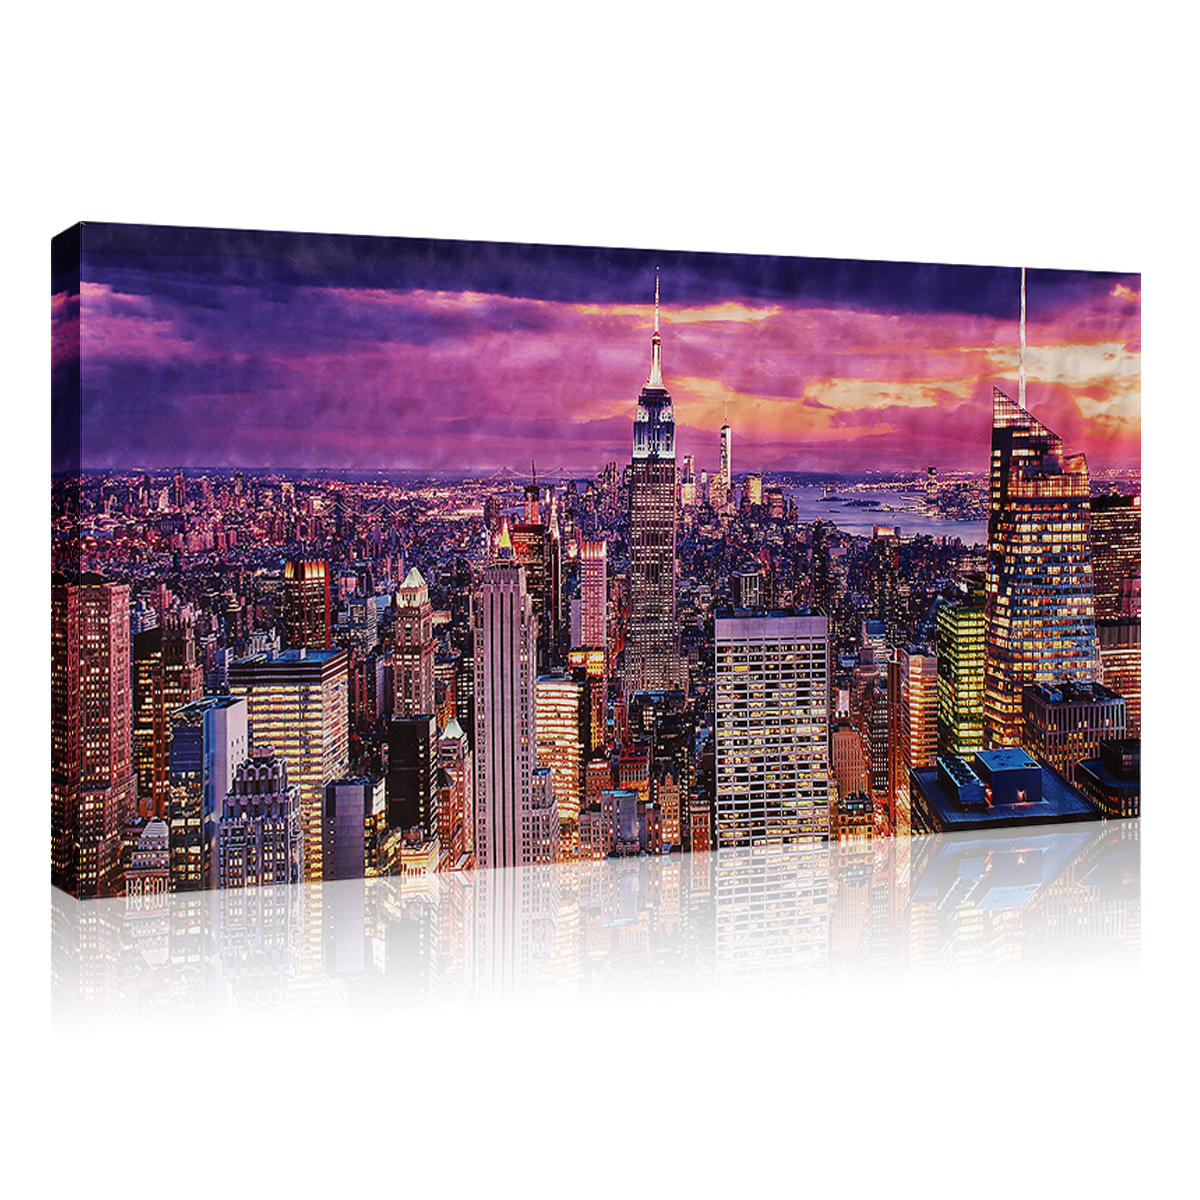 xxl leinwand bilder aufgespannt kunstdruck new york skyline bild wandbild deko ebay. Black Bedroom Furniture Sets. Home Design Ideas